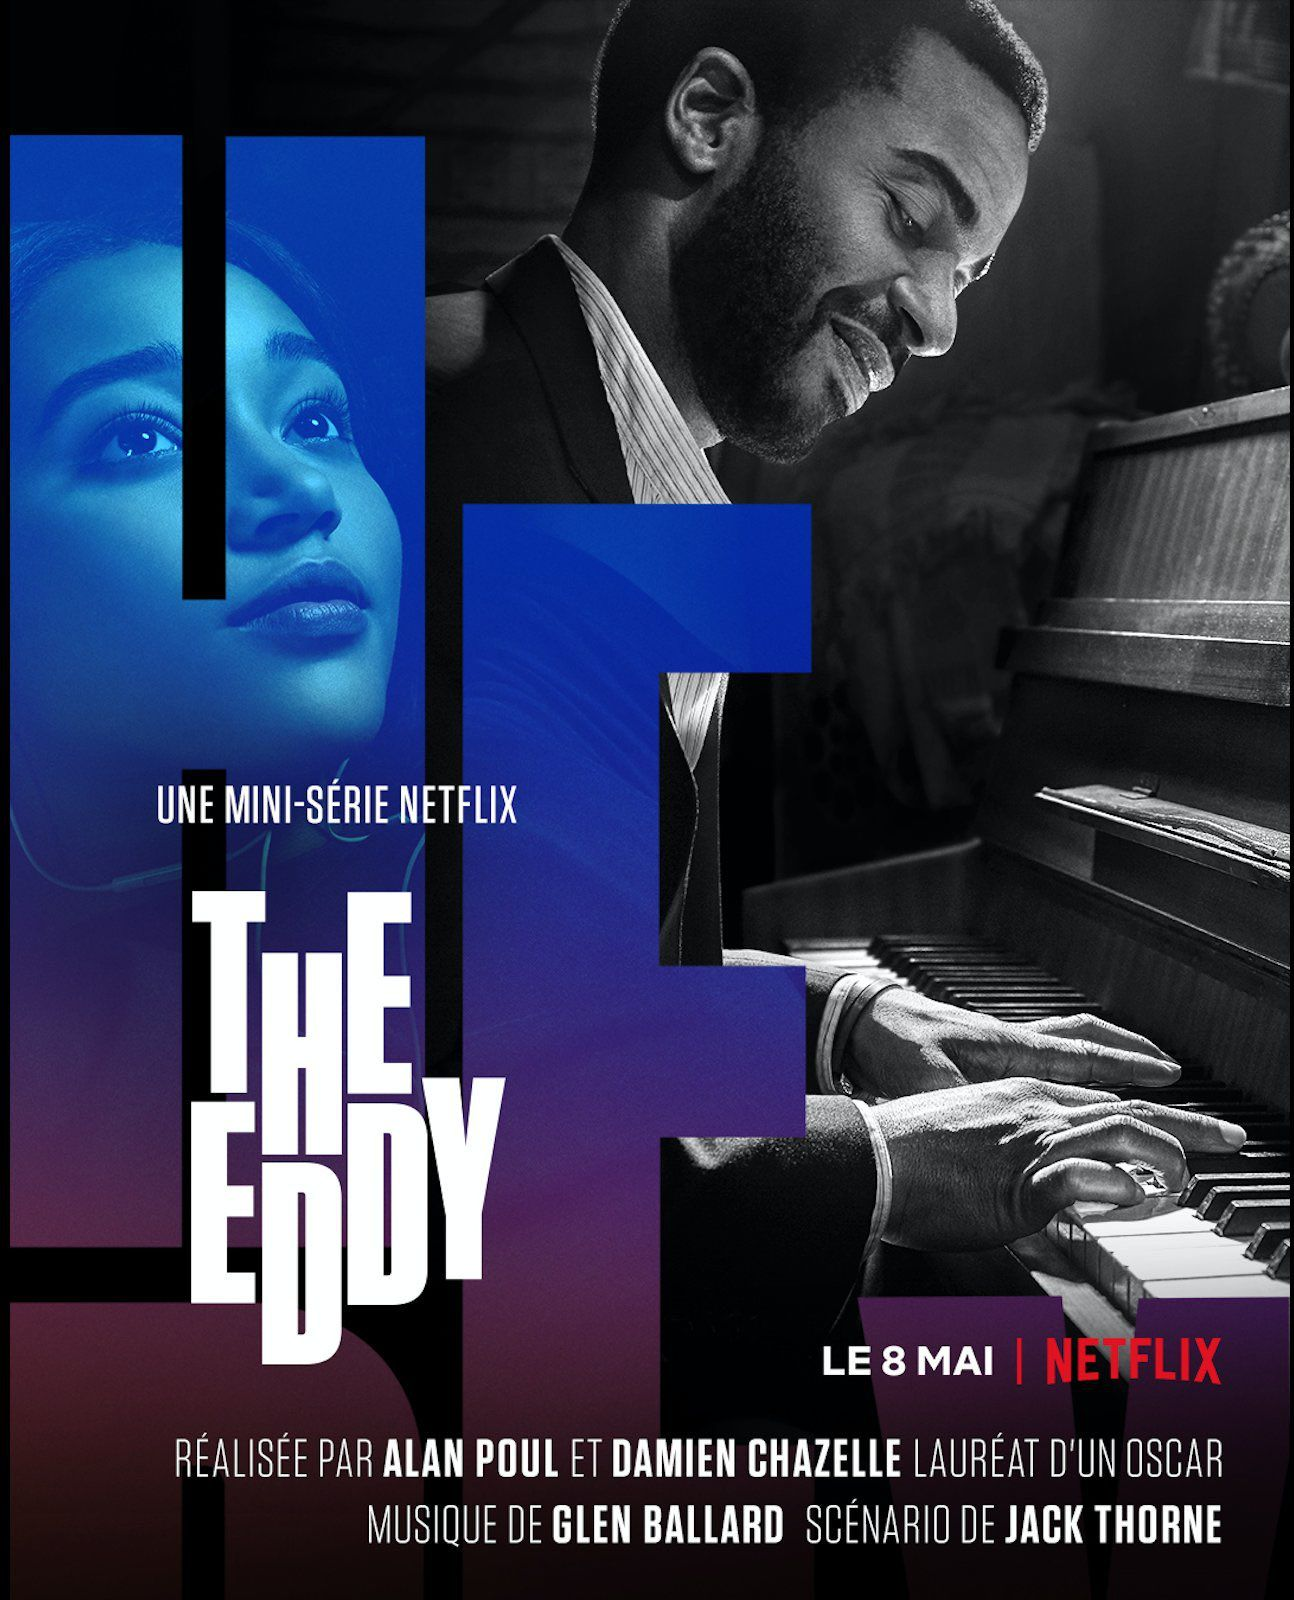 The Eddy - Série (2020) streaming VF gratuit complet